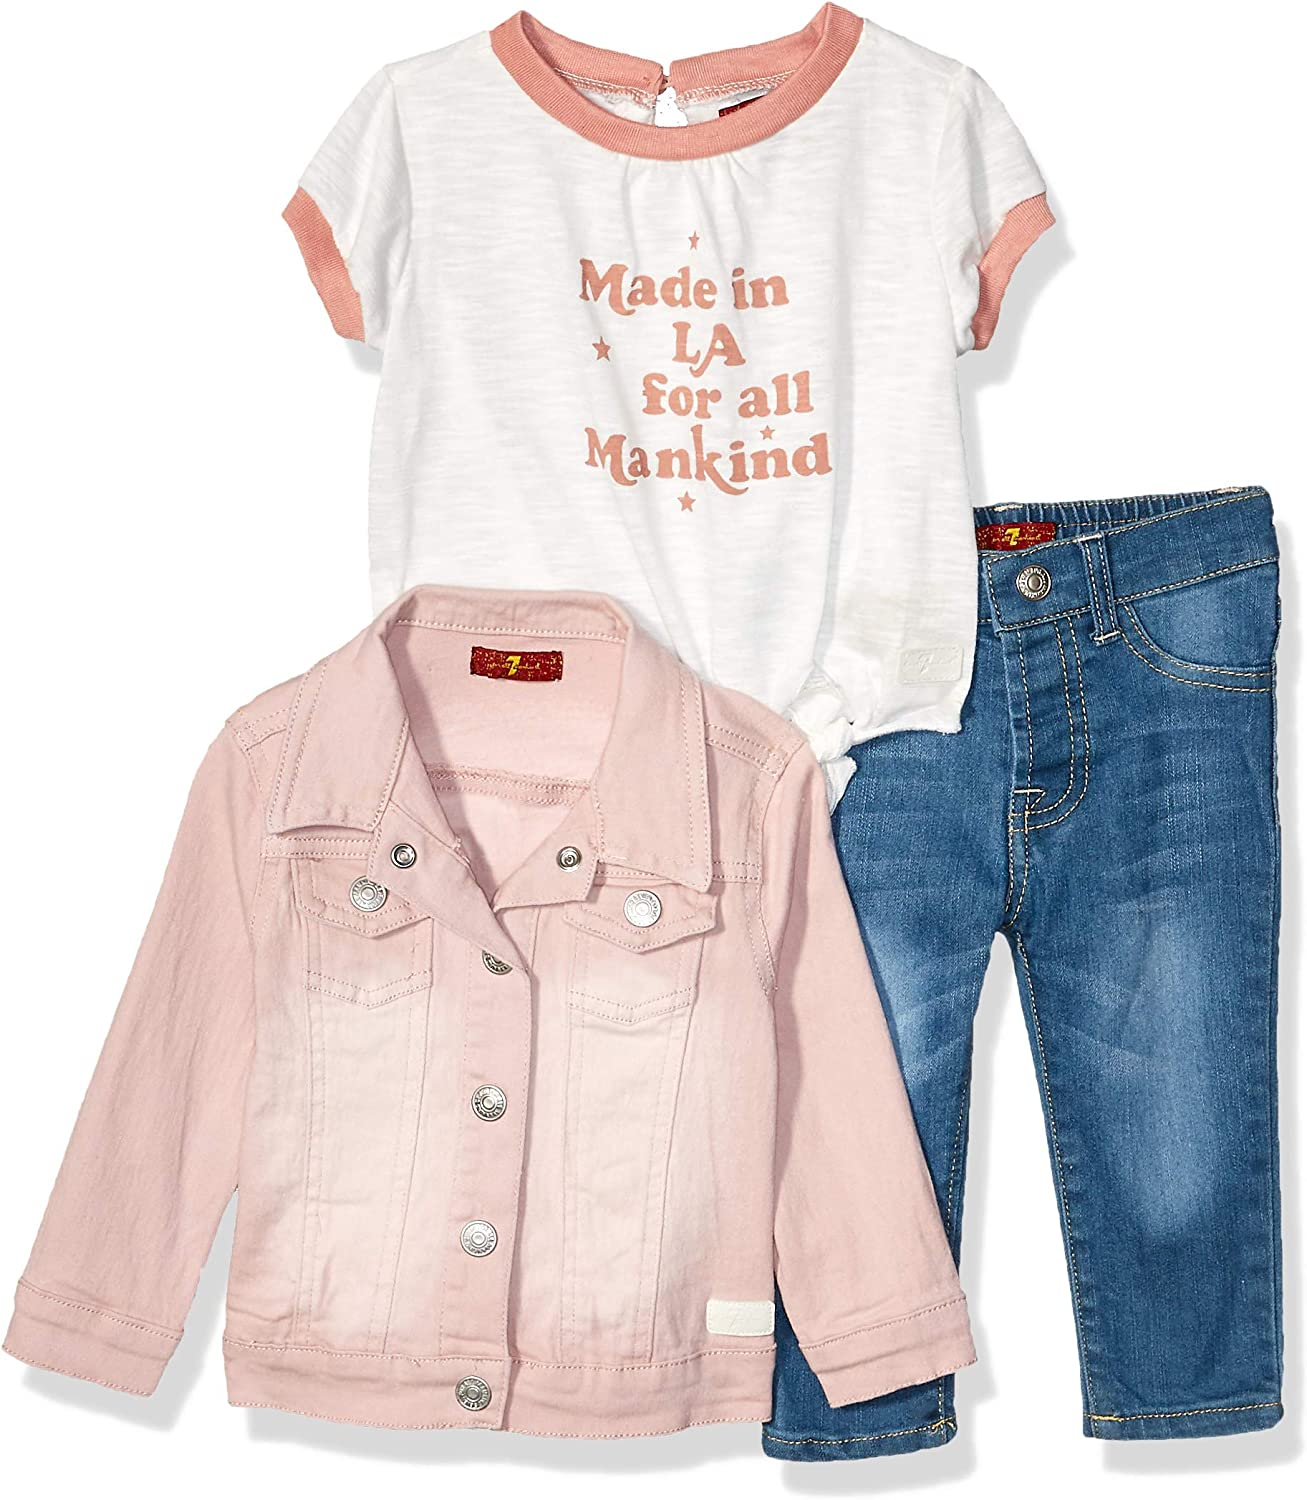 7 FOR ALL MANKIND Baby Girl/'s 3 Piece Set-Poncho,top,Jeans-NWT 18 Months